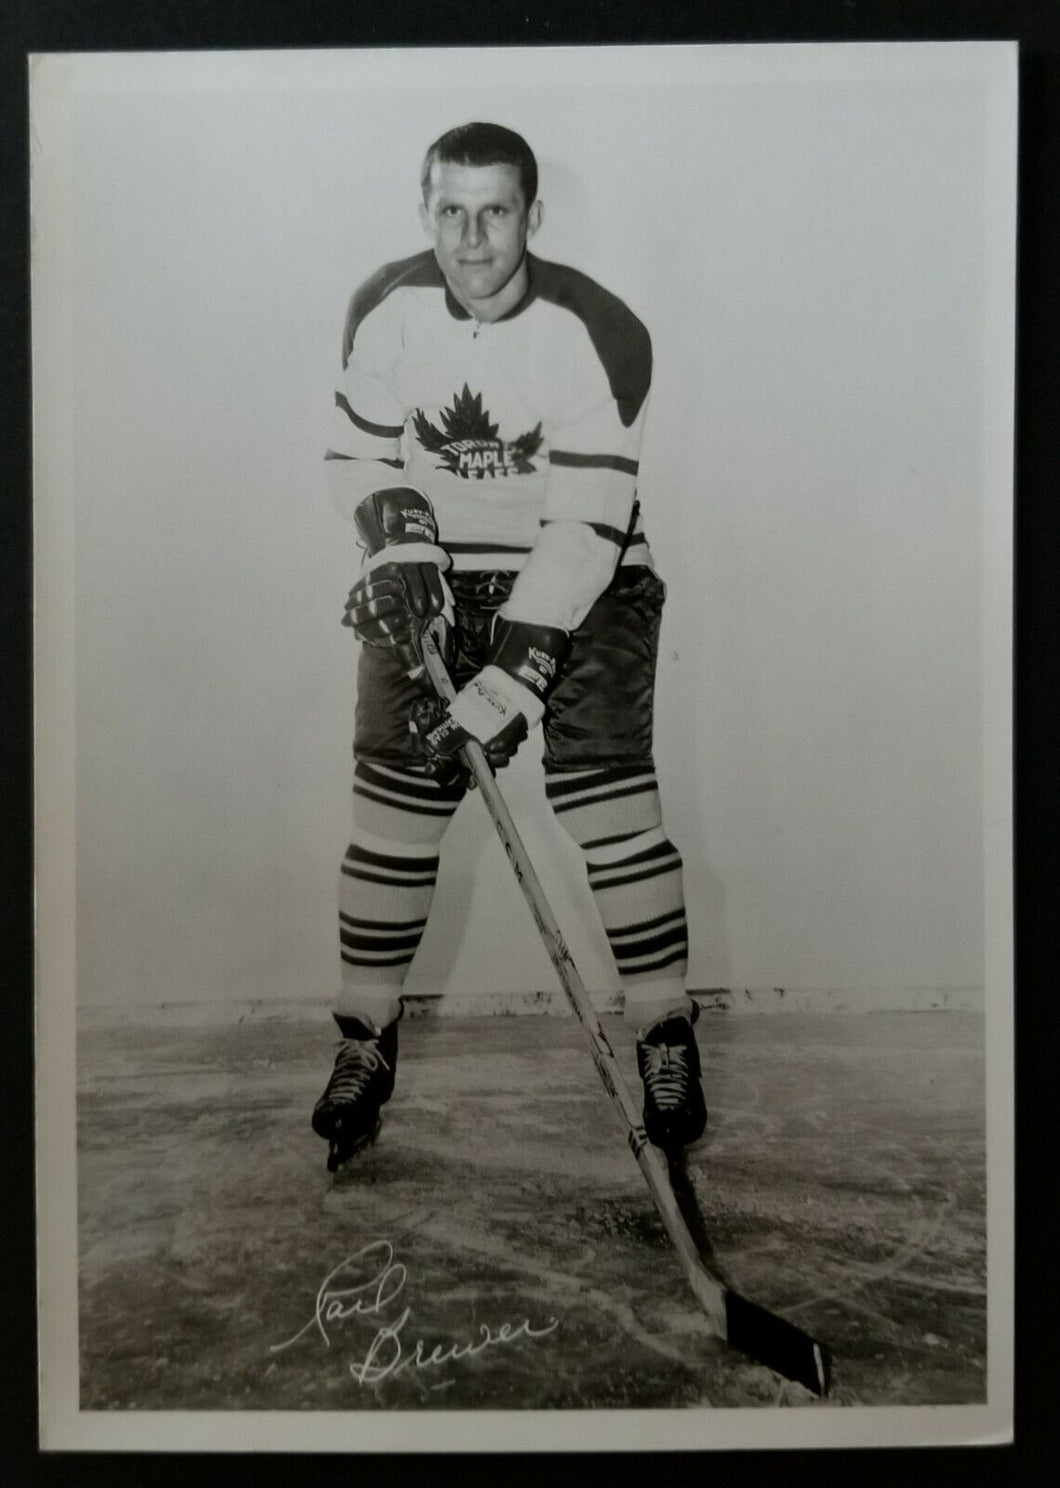 1963-64 Toronto Maple Leafs Photo Carl Brewer Vintage Sold at Maple Leaf Gardens